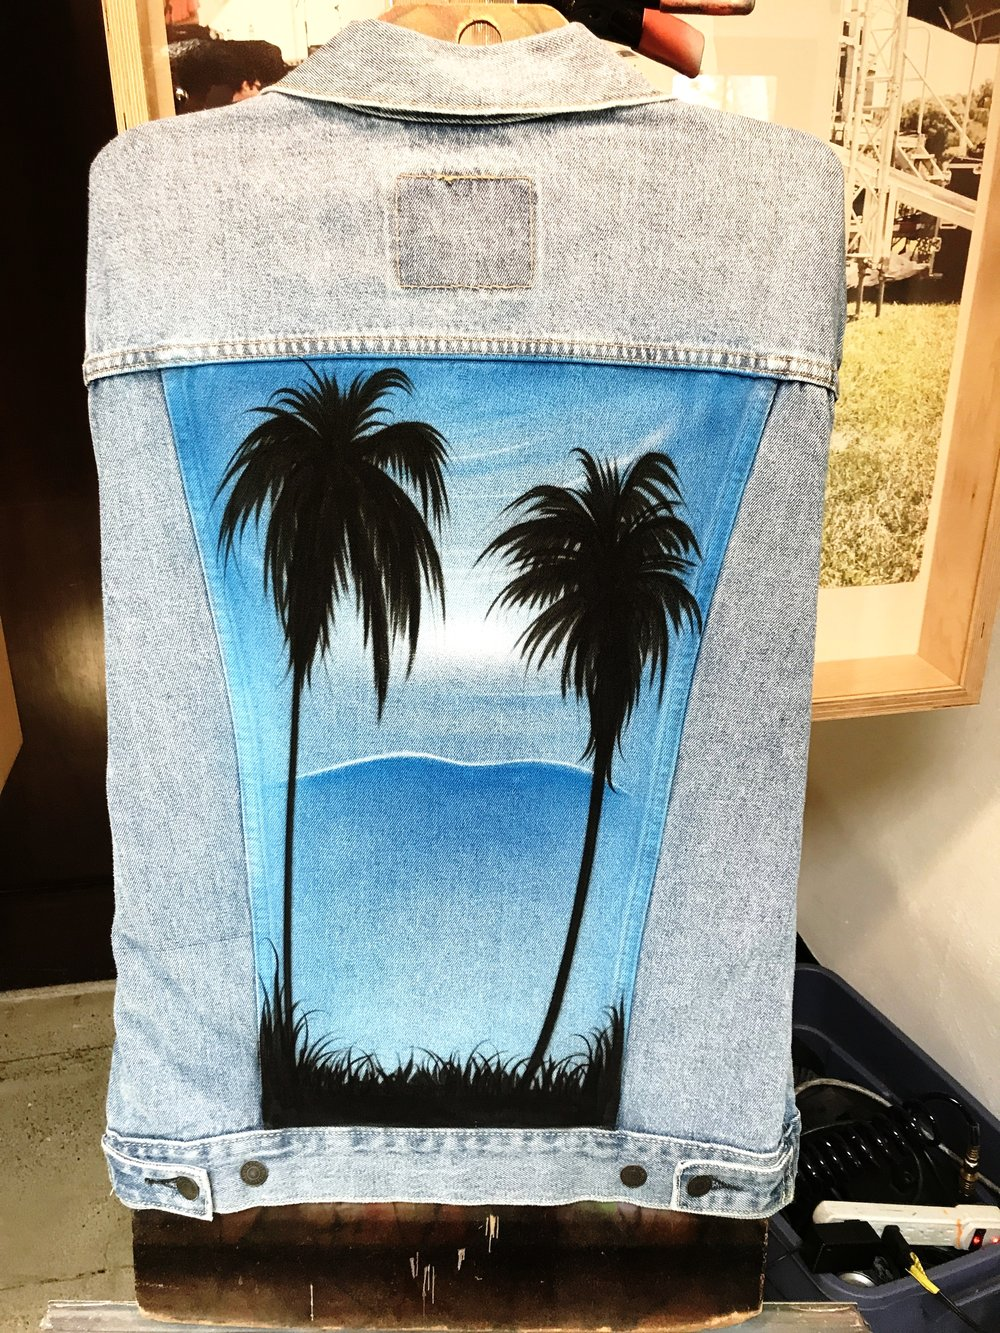 Airbrush California palm trees Coachella Levi's